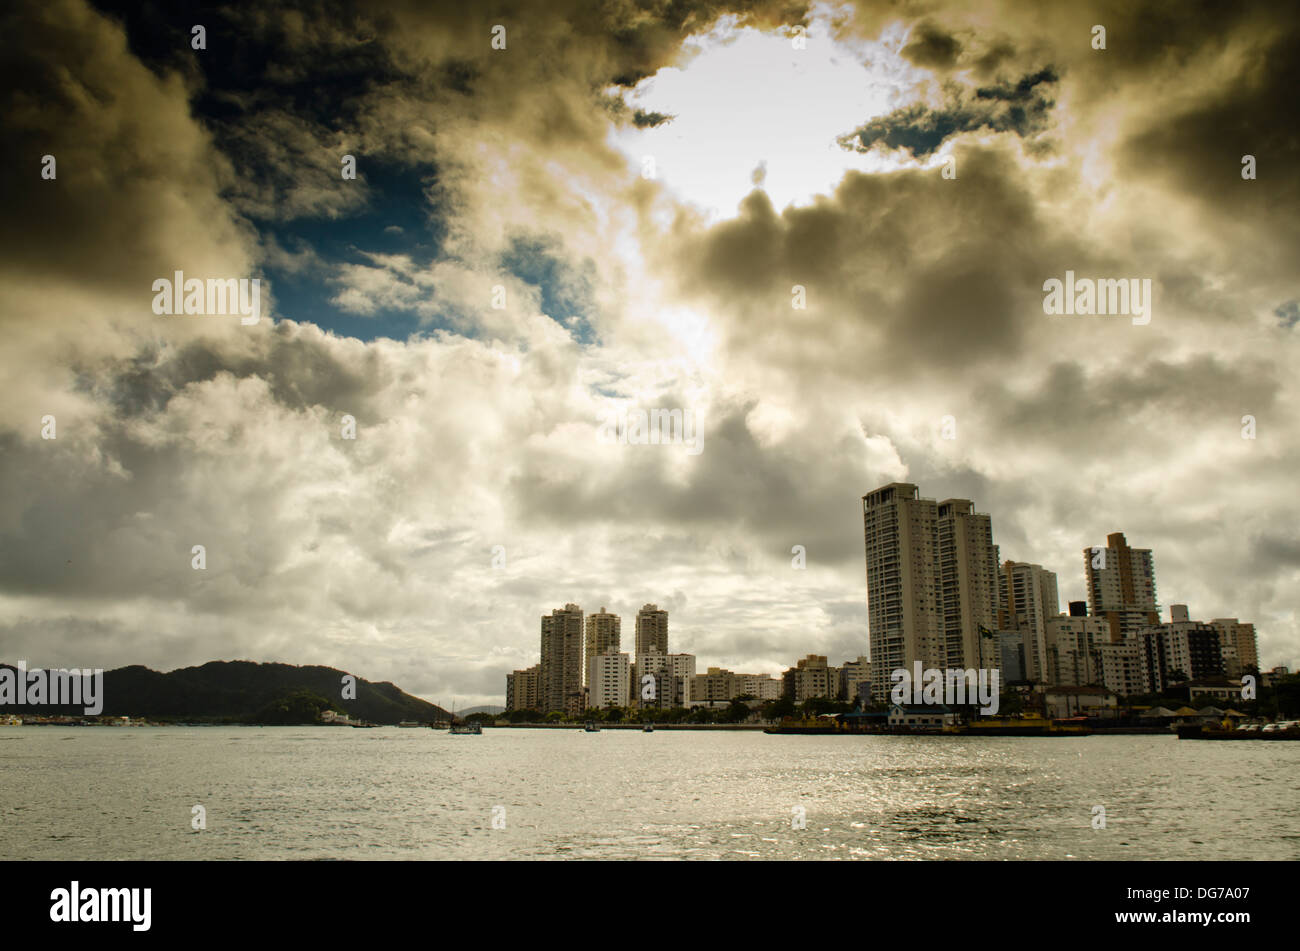 City of Santos, Sao Paulo state, Brazil. View from Guarujá city. Ponta da Praia Neighborhood - Stock Image